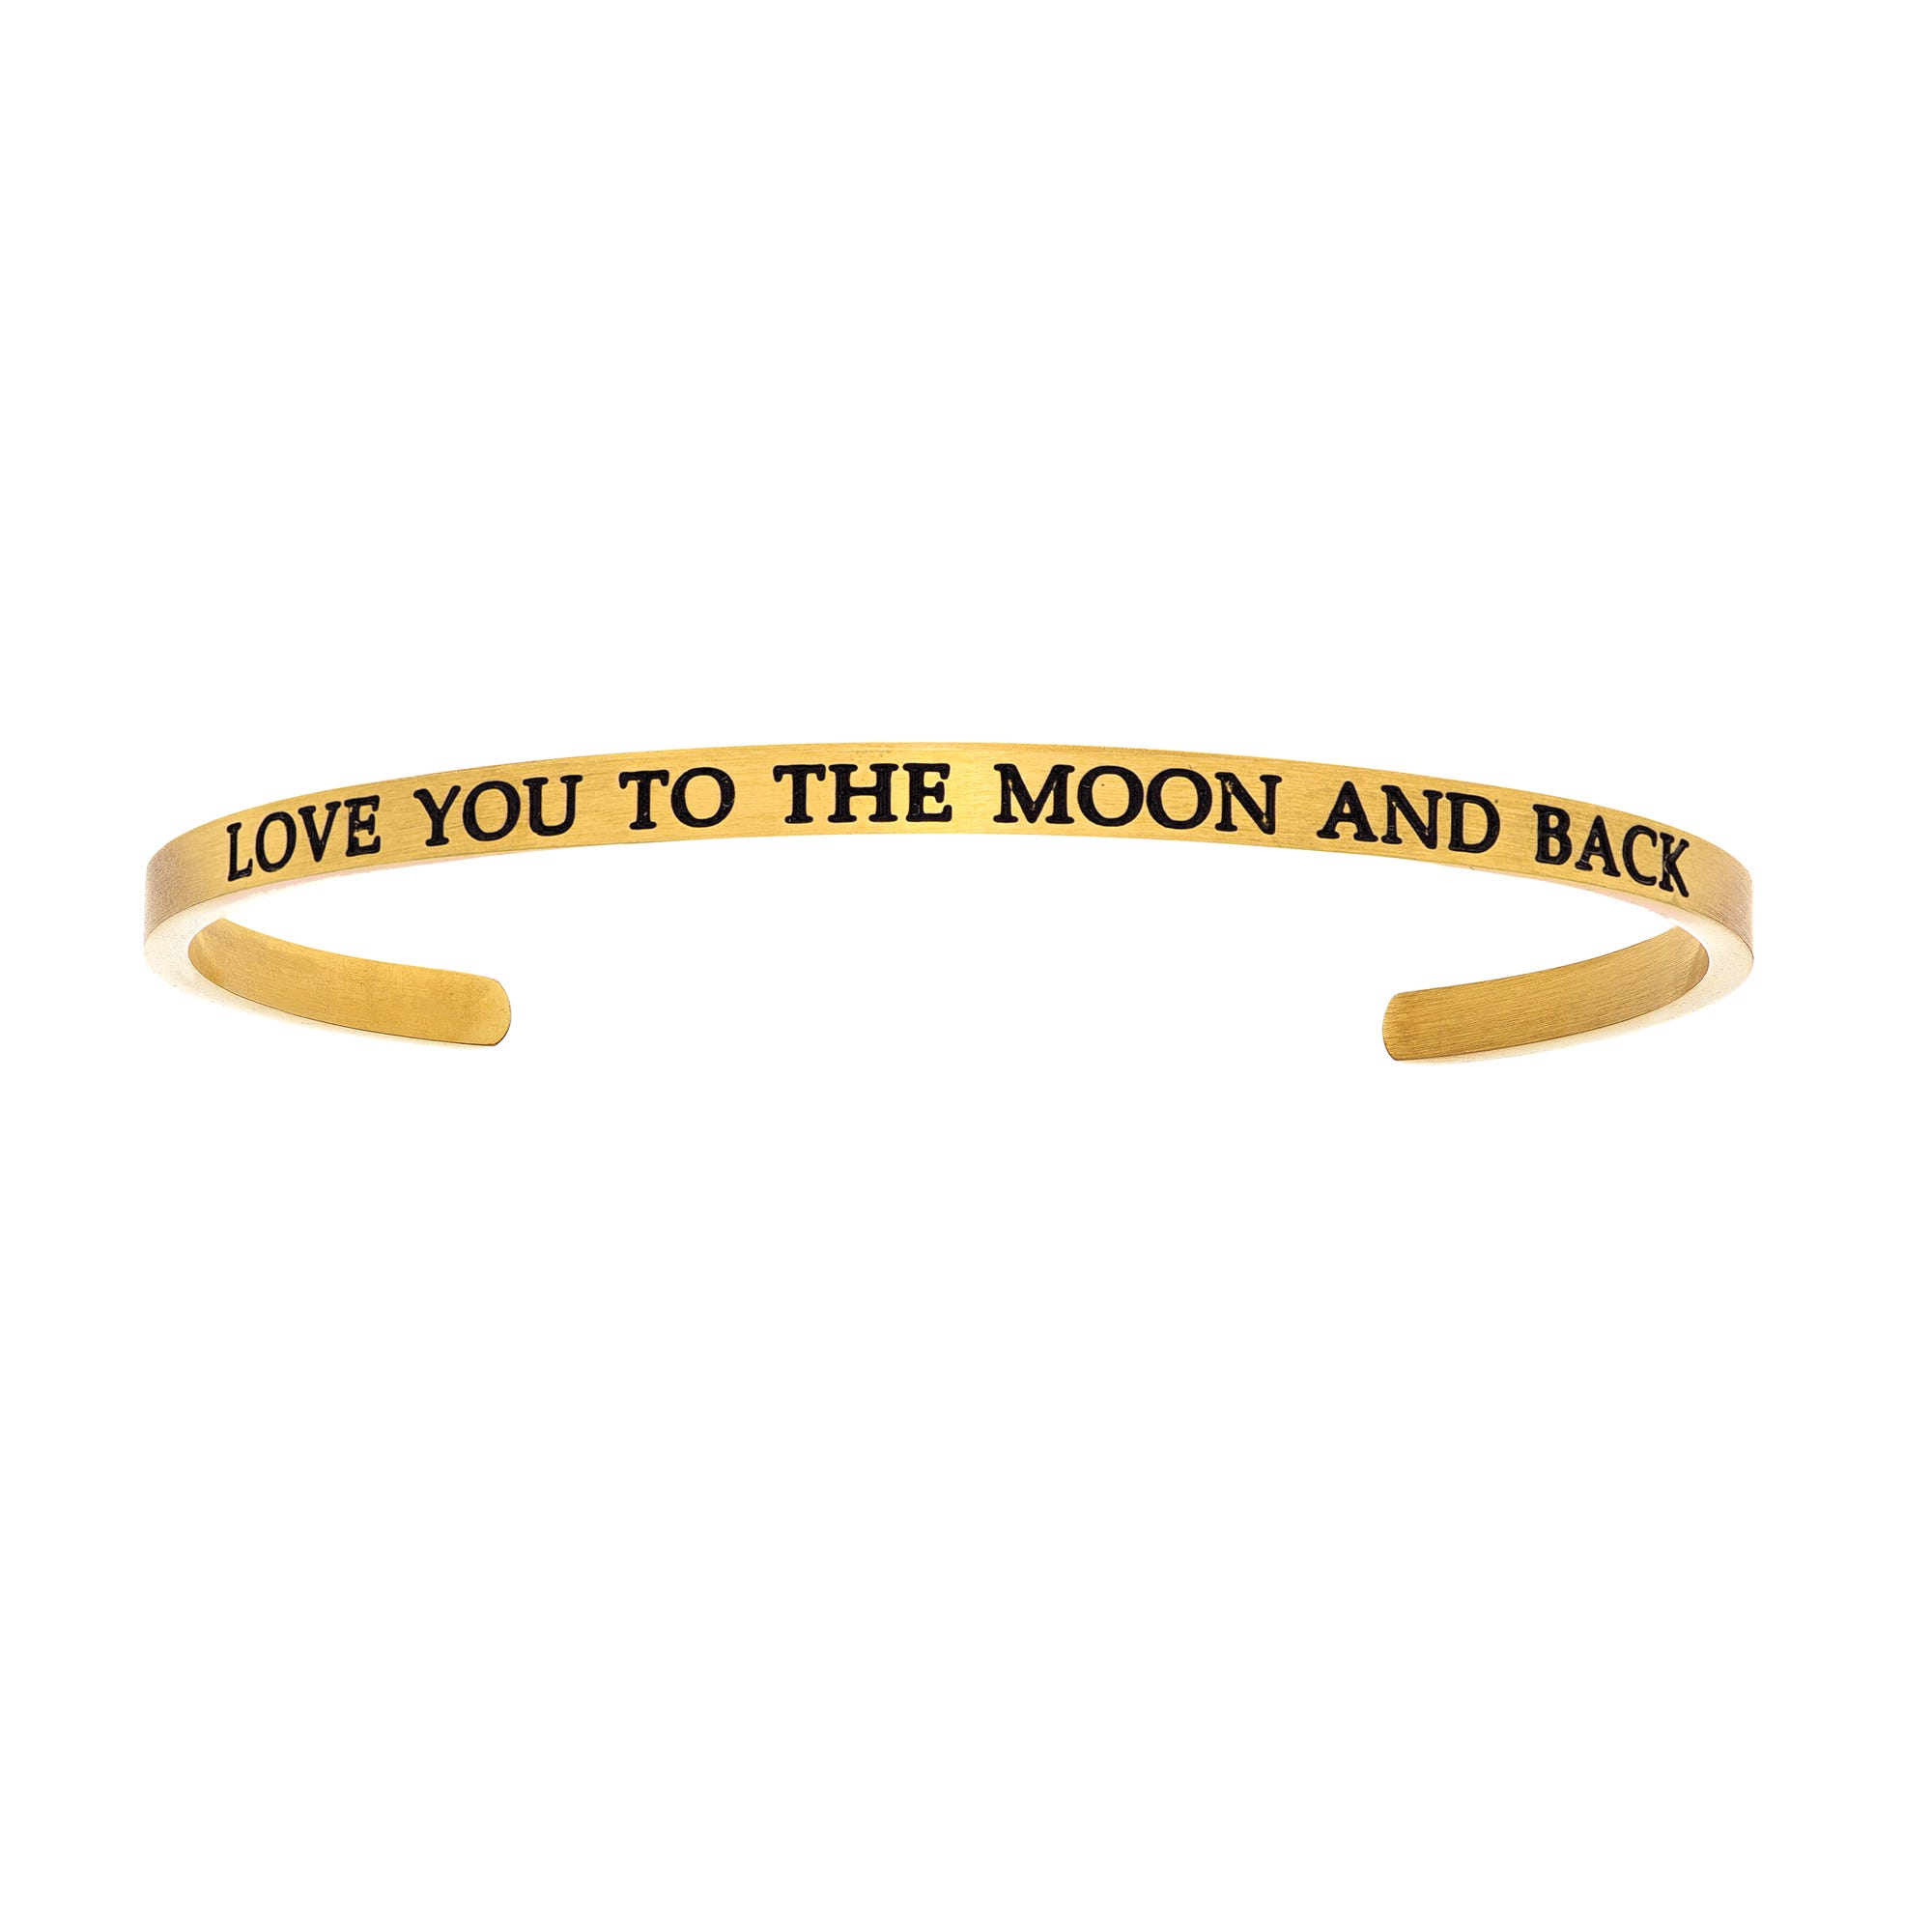 Love You To The Moon & Back. Intuitions Cuff Bracelet in Yellow Stainless Steel